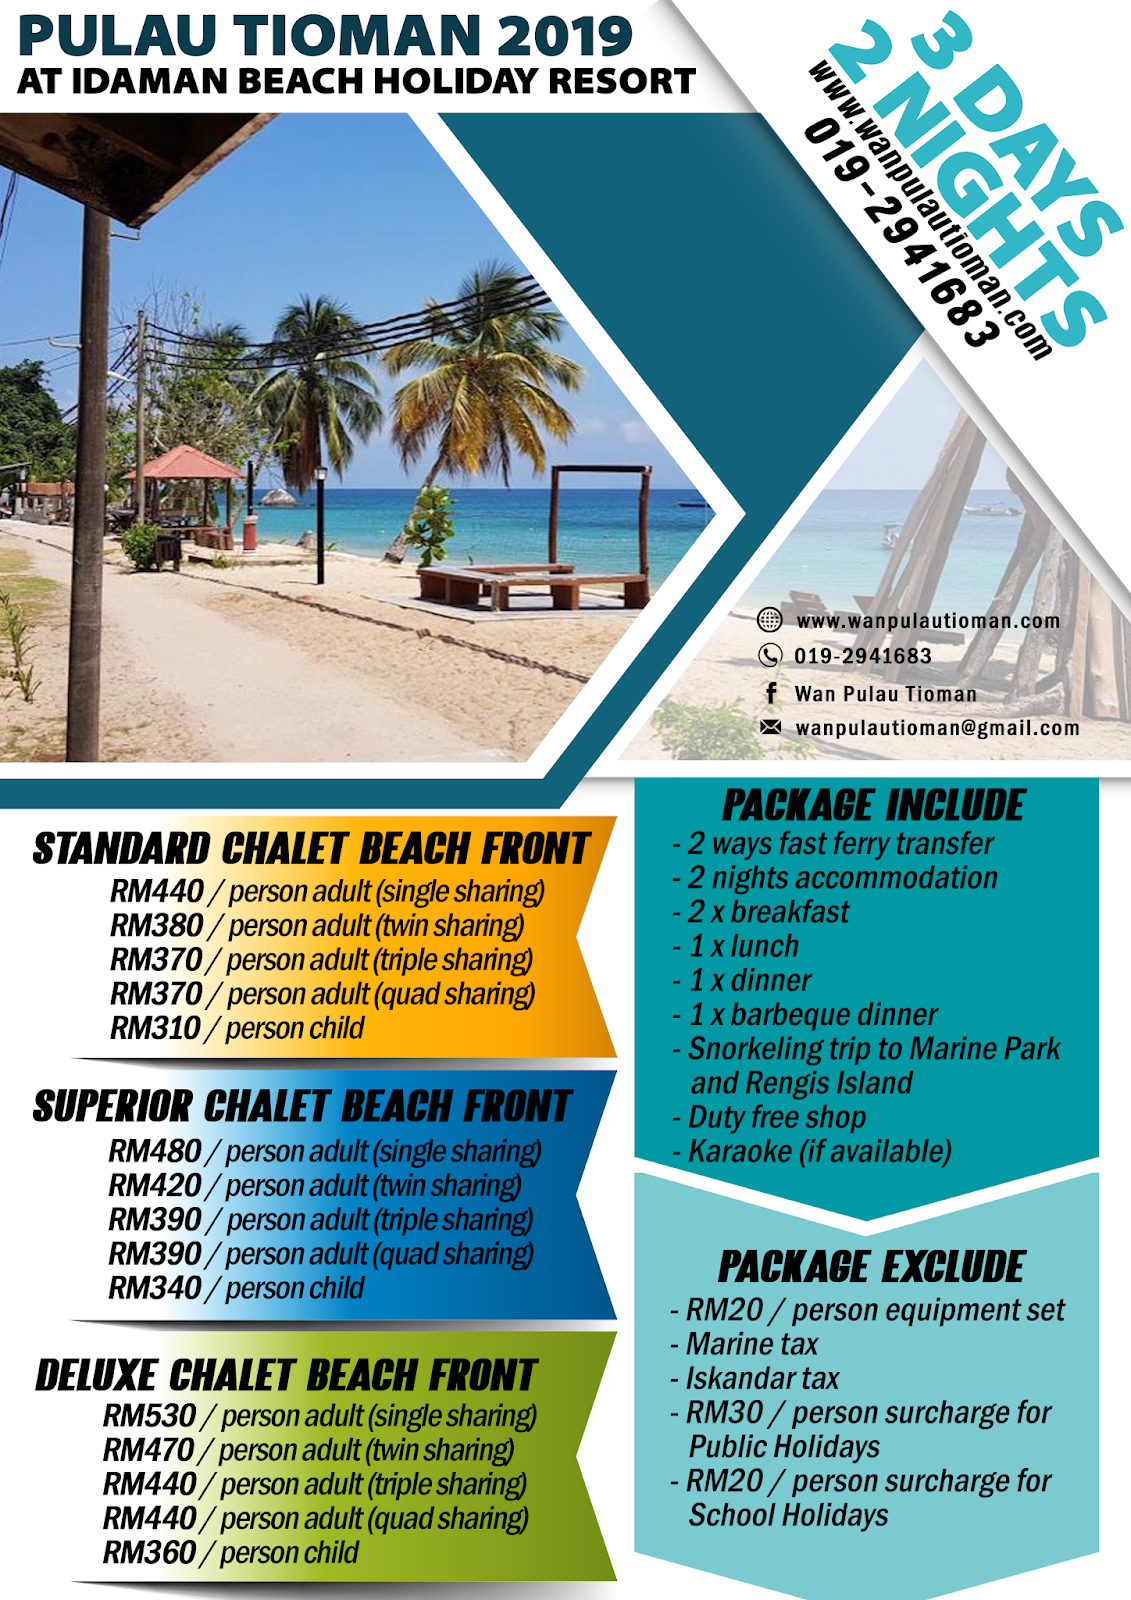 2019 3 Days 2 Nights at Idaman Beach Holiday Resort - Pulau Tioman Malaysia